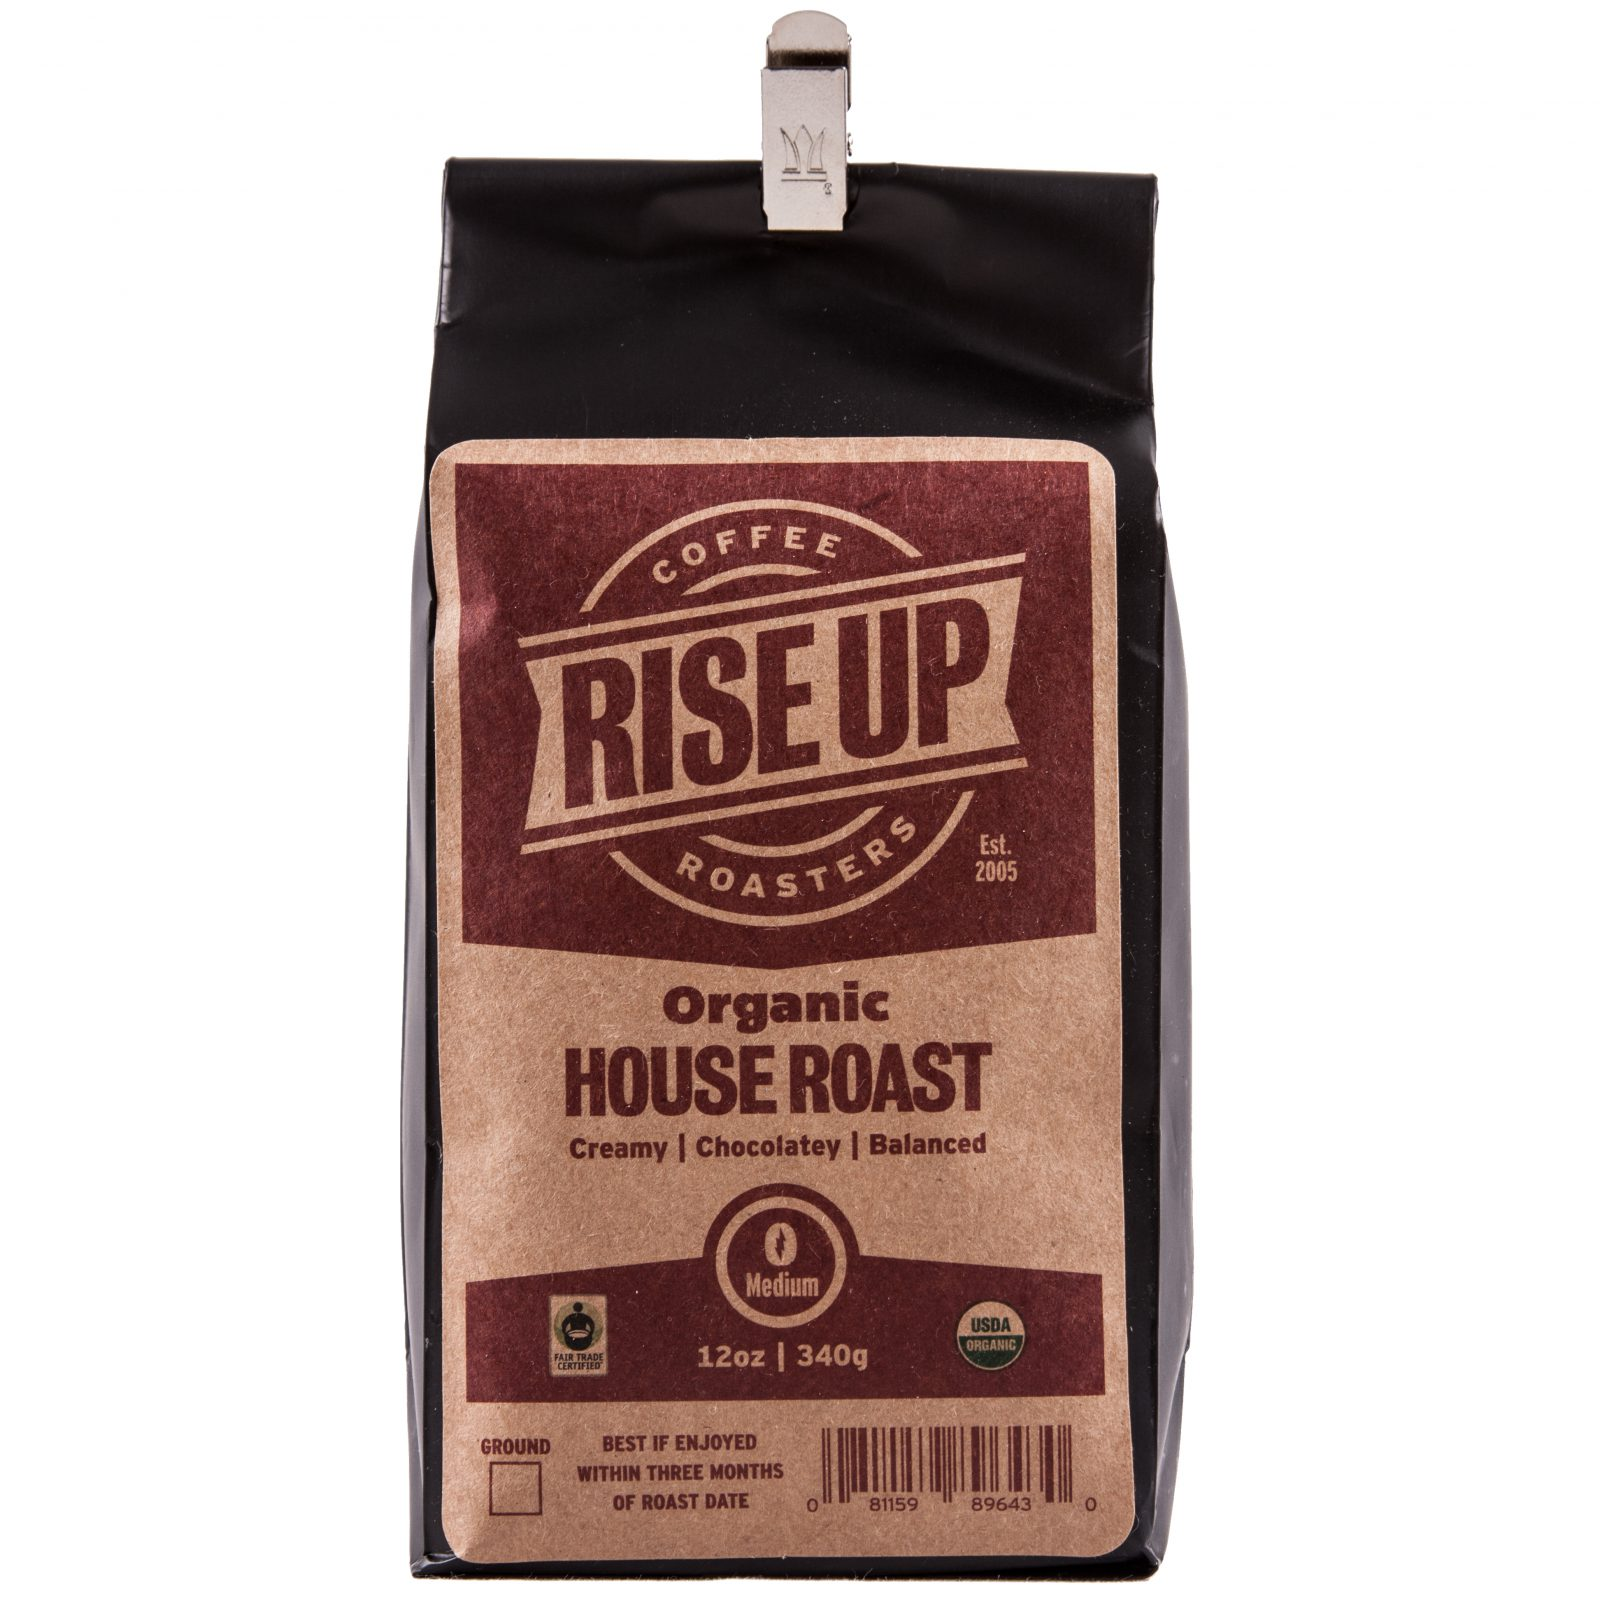 Coffee-12oz-House-Roast-1600x1600.jpg